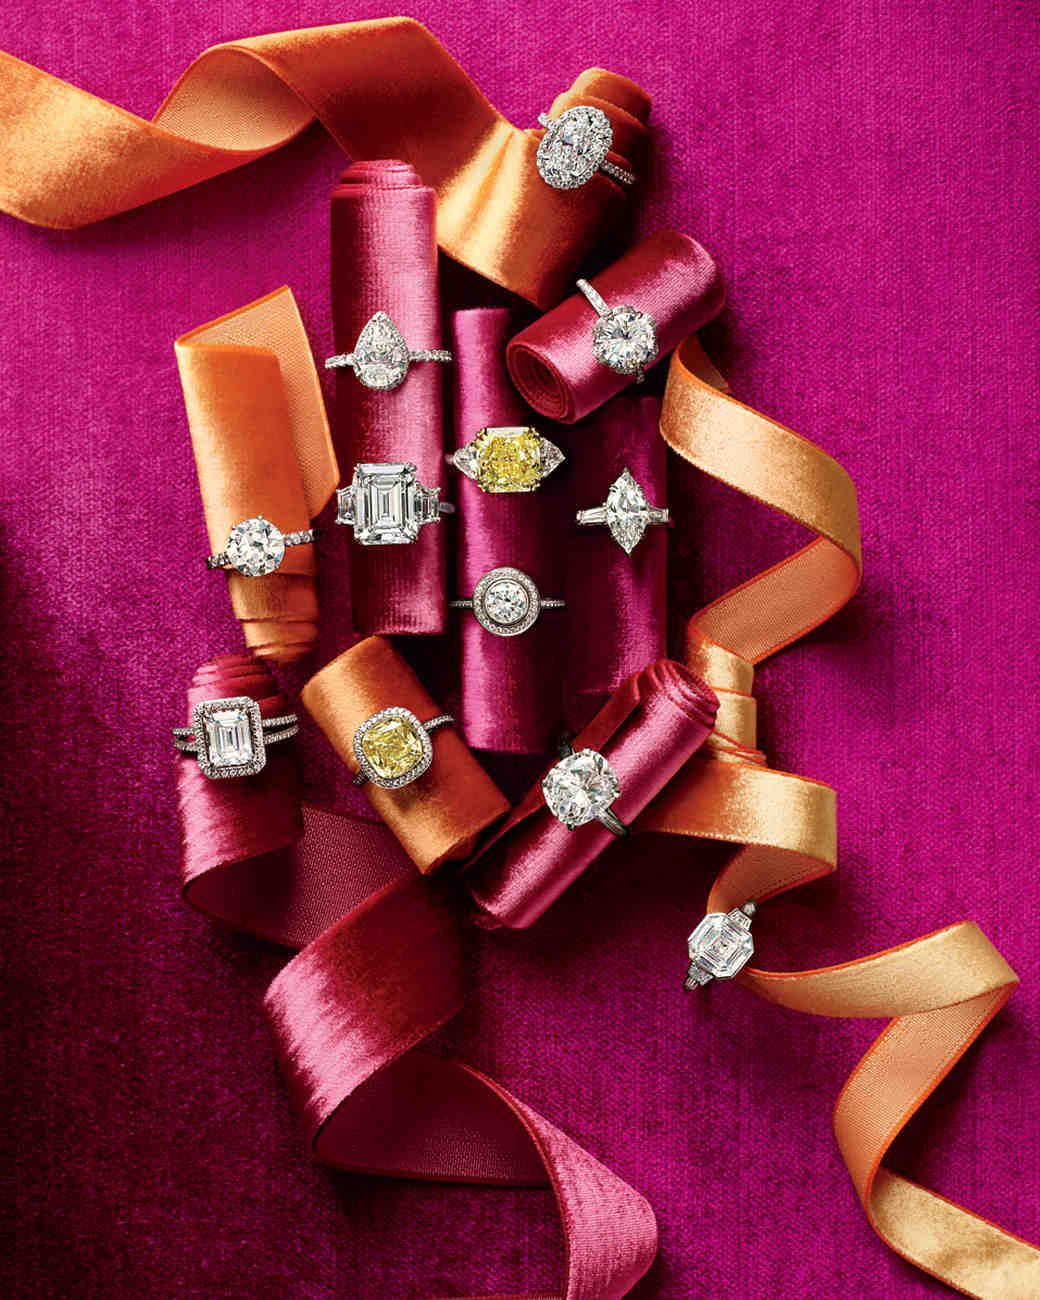 20 Years Of Wedding Wisdom: Shopping For Engagement Rings And Wedding Bands   Martha Stewart Weddings